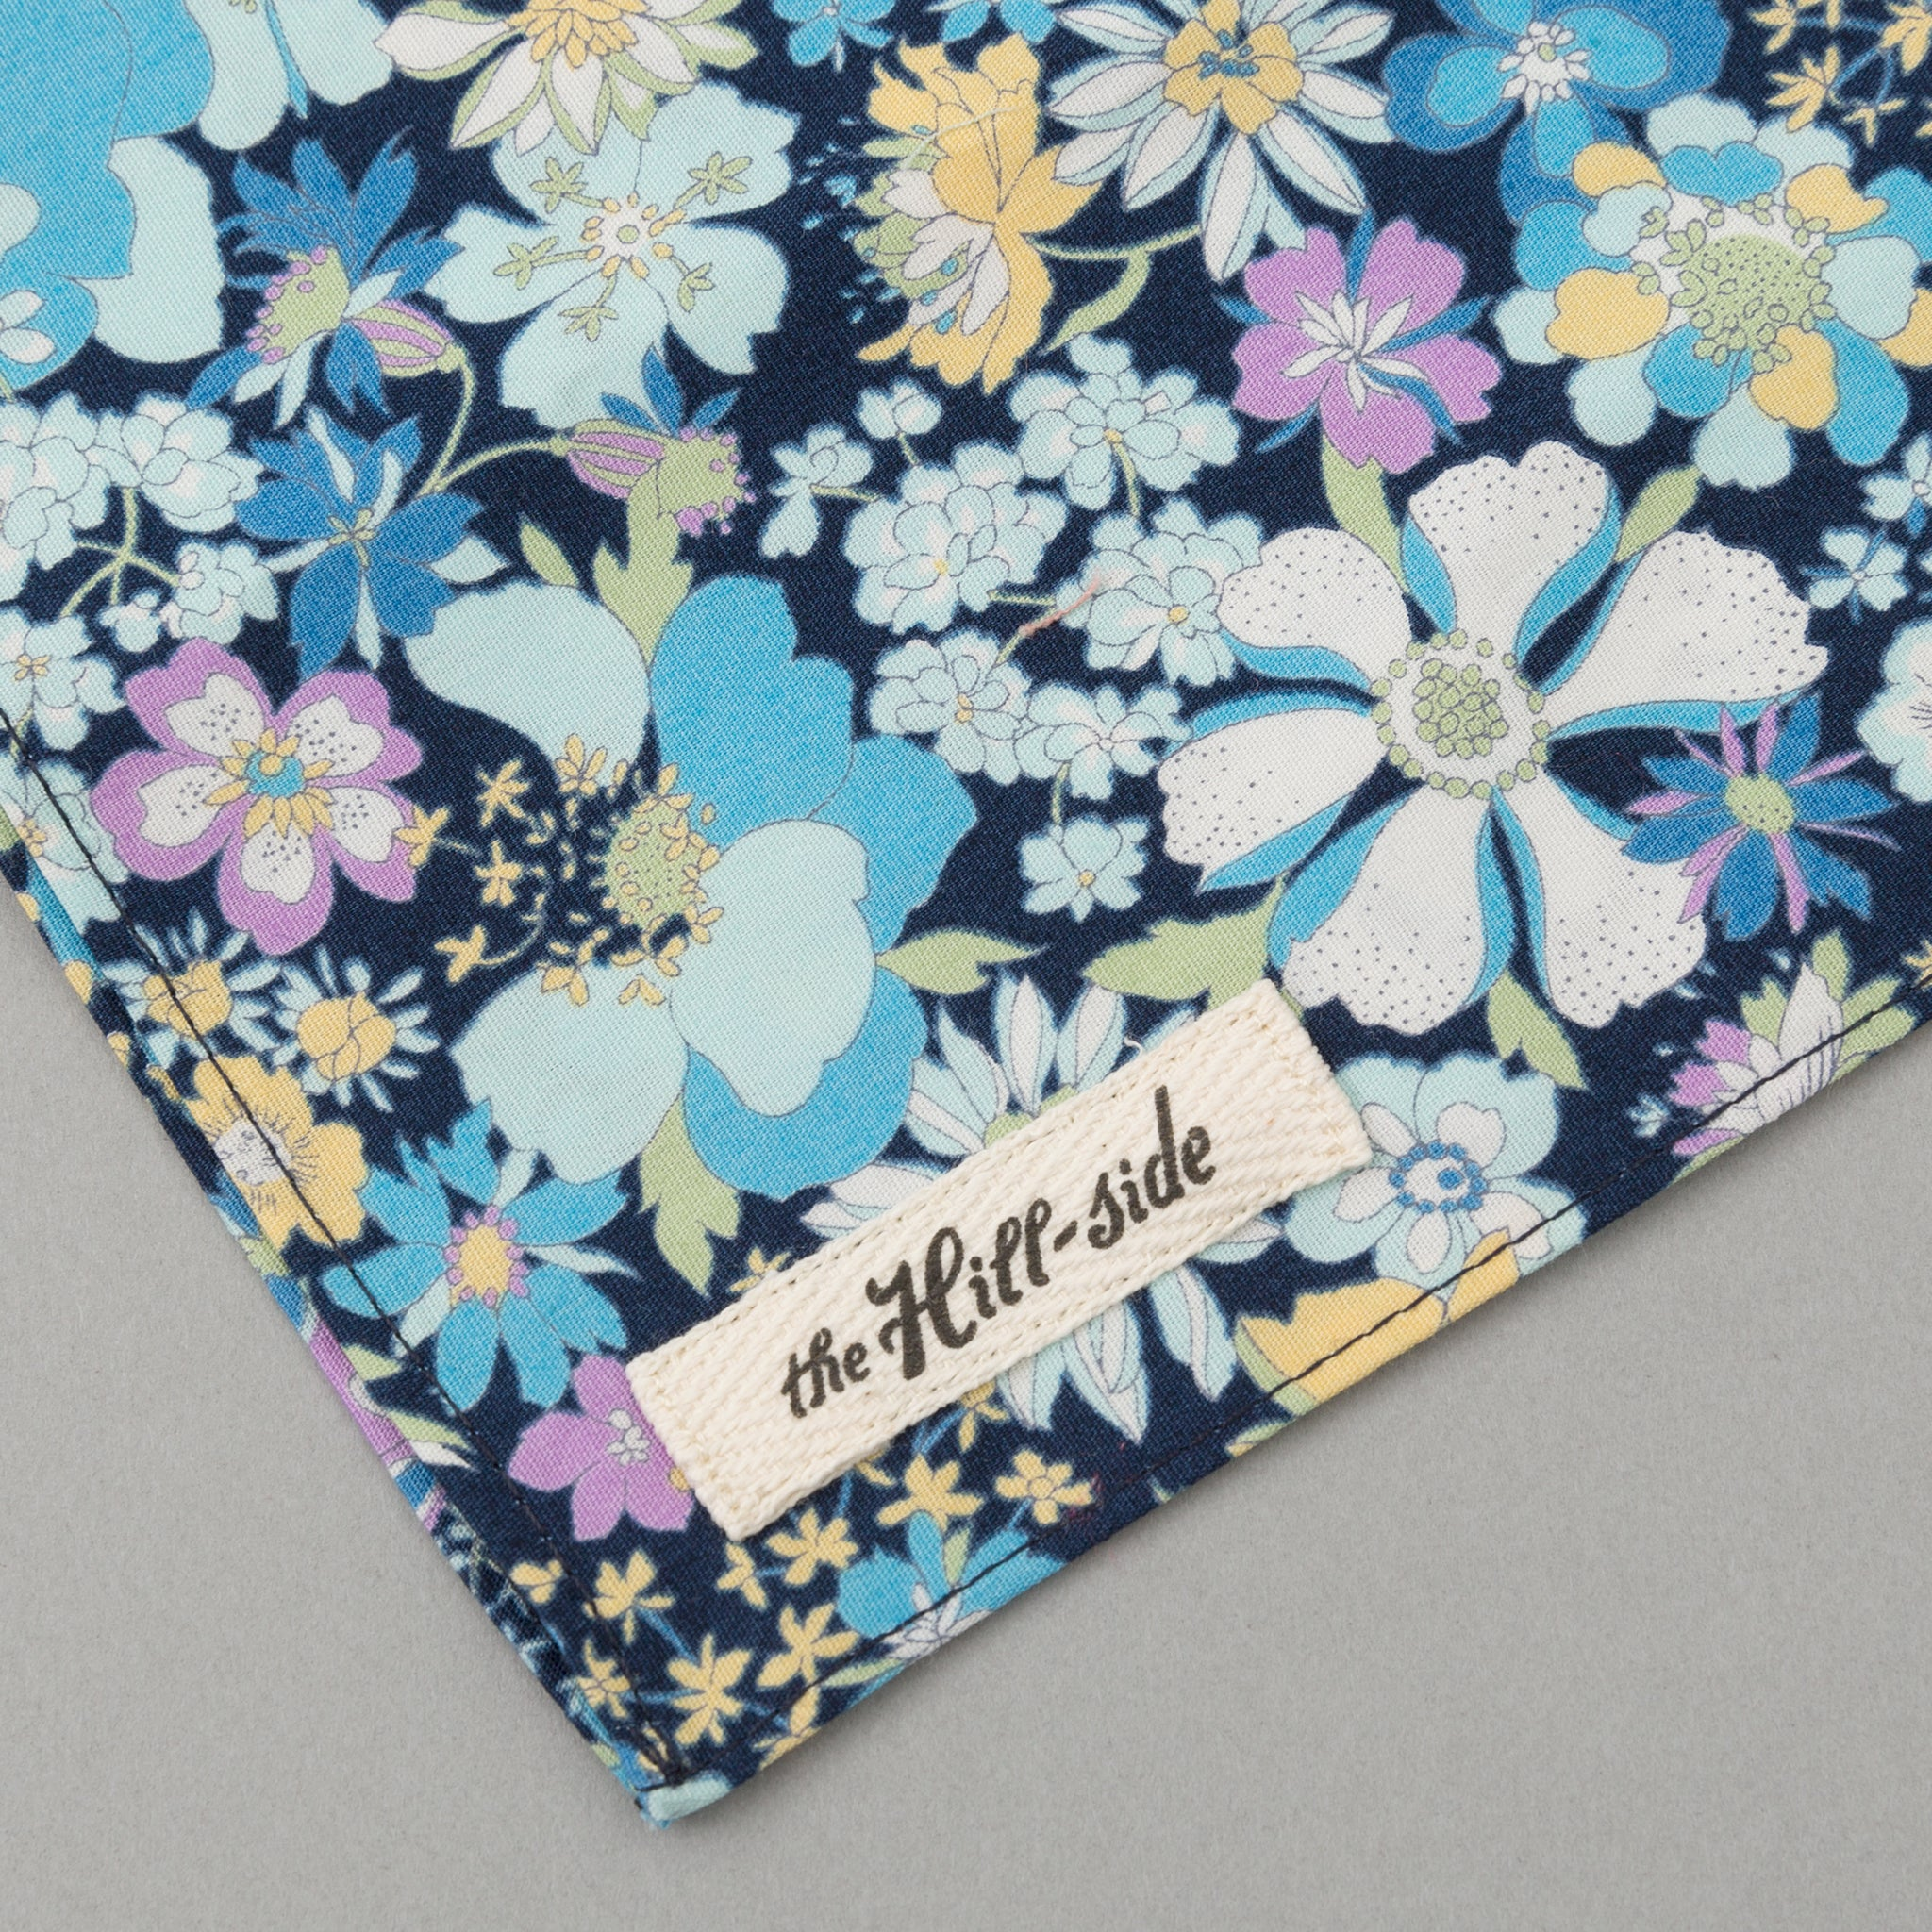 The Hill-Side - Psychedelic Floral Print Bandana, Blue - BA1-490 - image 1